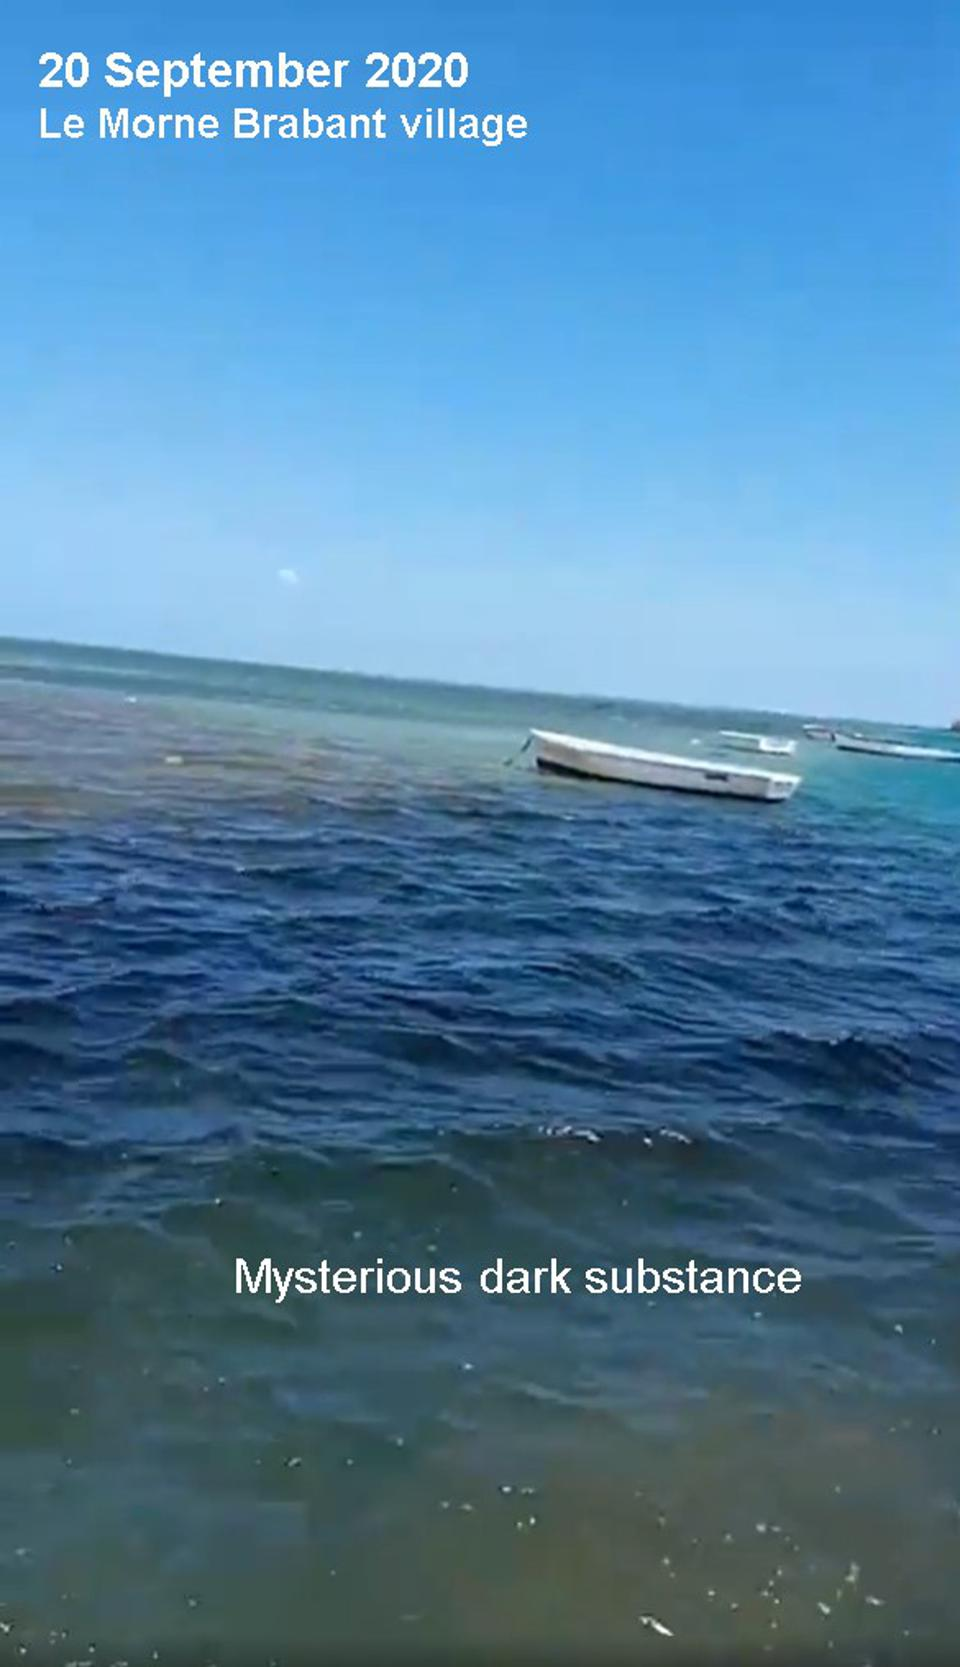 20 Sep 2020: video taken by local kitesurf instructor show the presence of  large amount of dark substances that have never been seen before in the heavily protected coral lagoons of Mauritius.